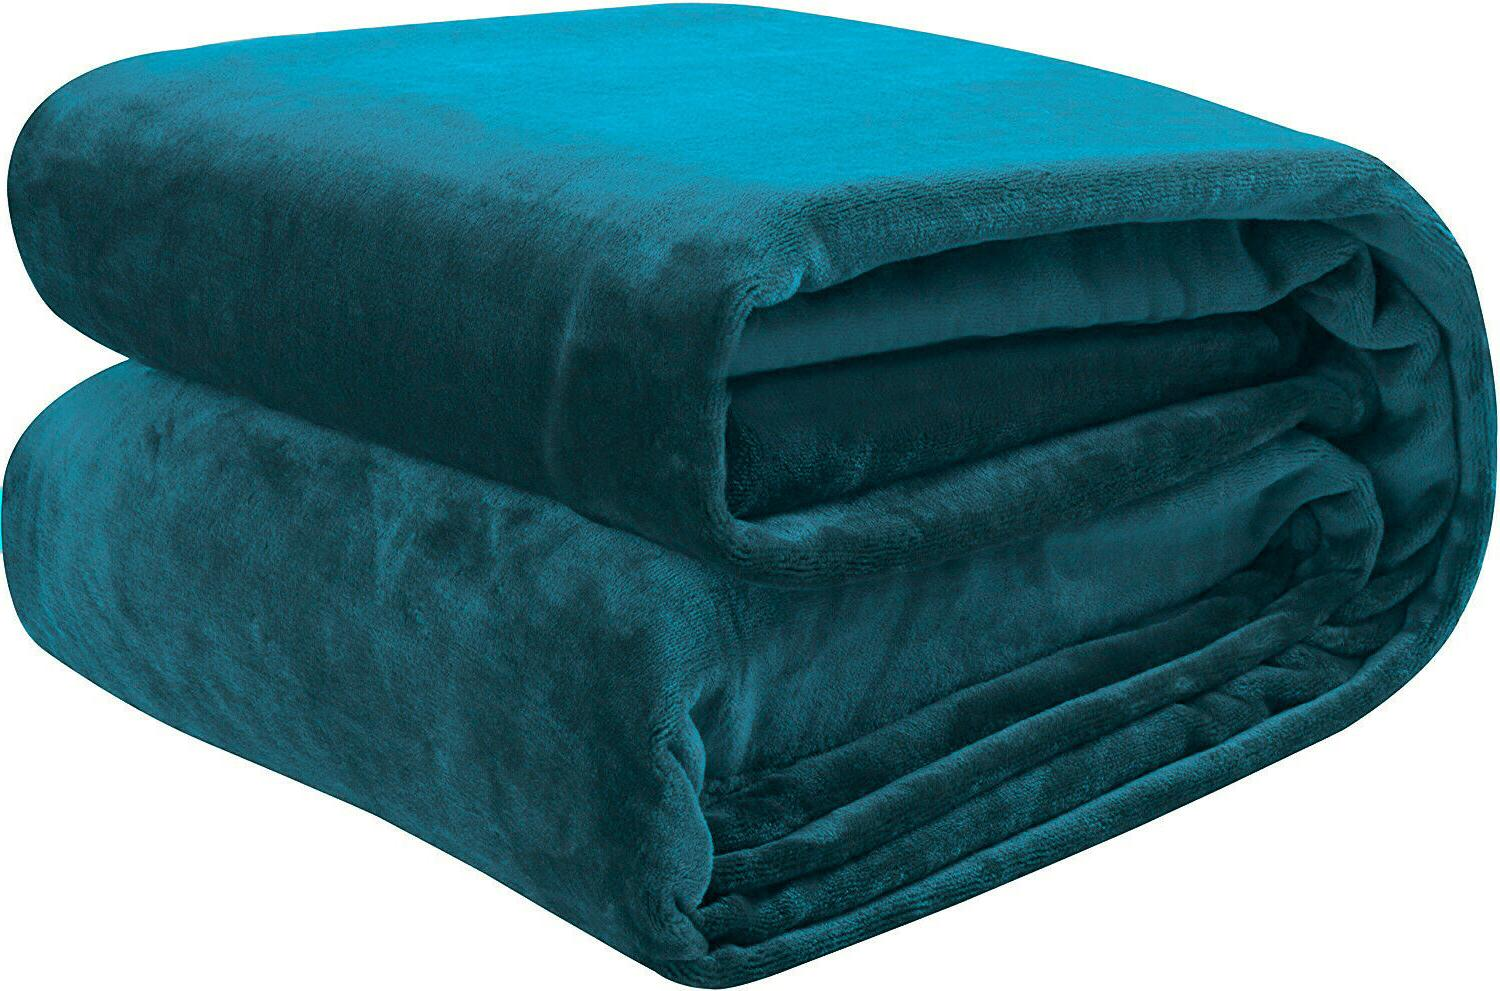 Solid Turquoise Plush Super Soft Reversible Fleece